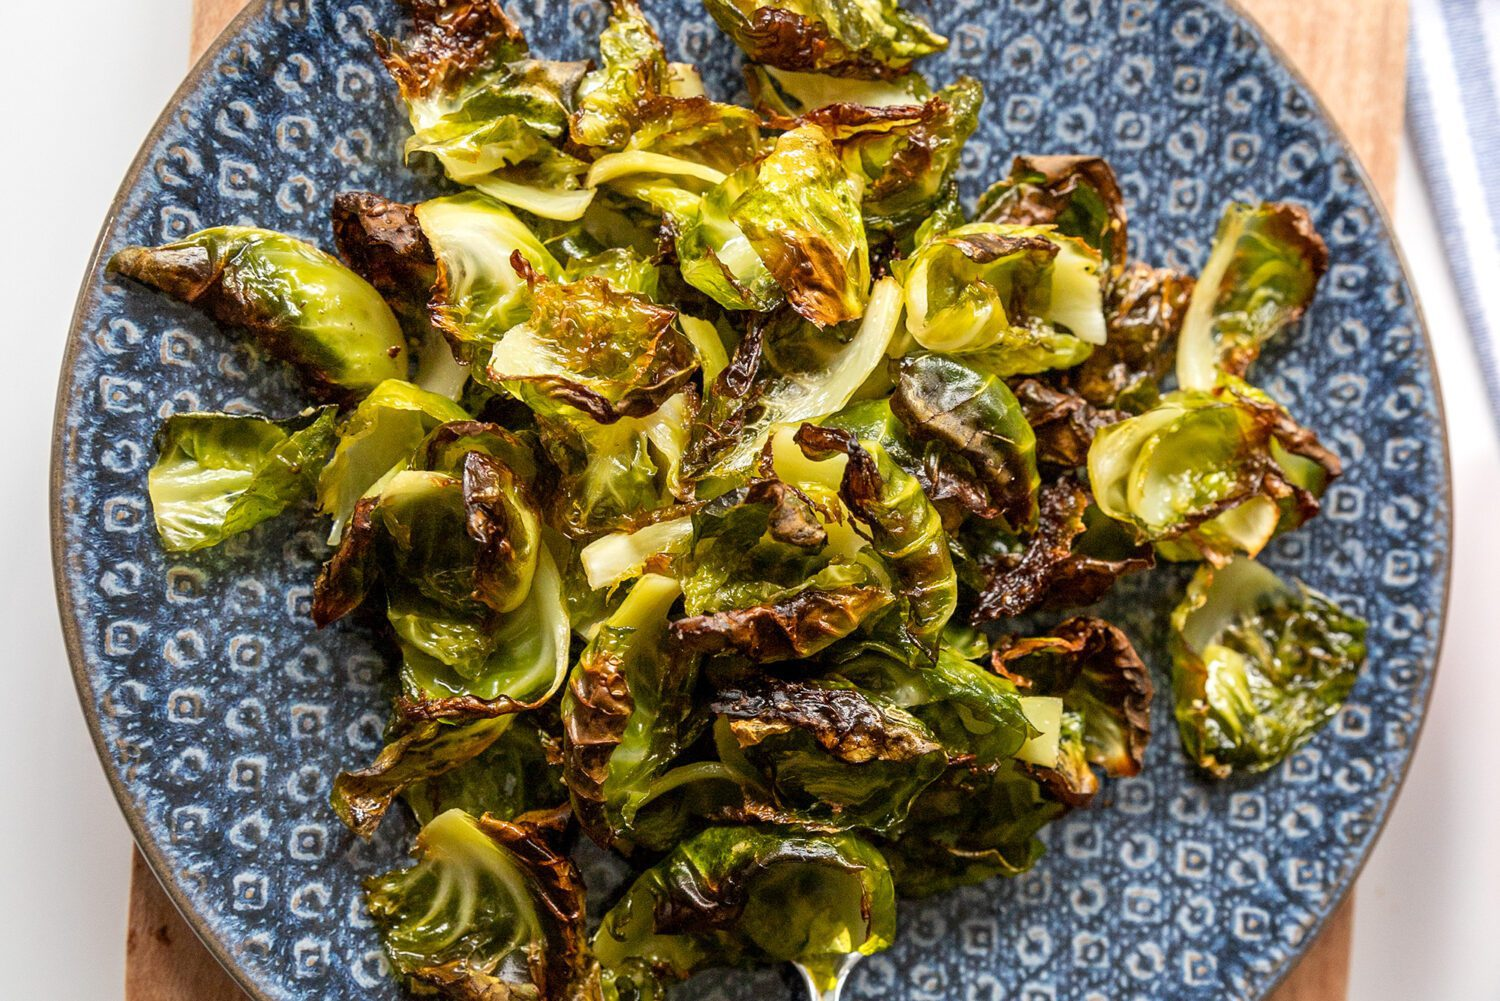 crispy brussel sprouts on a plate